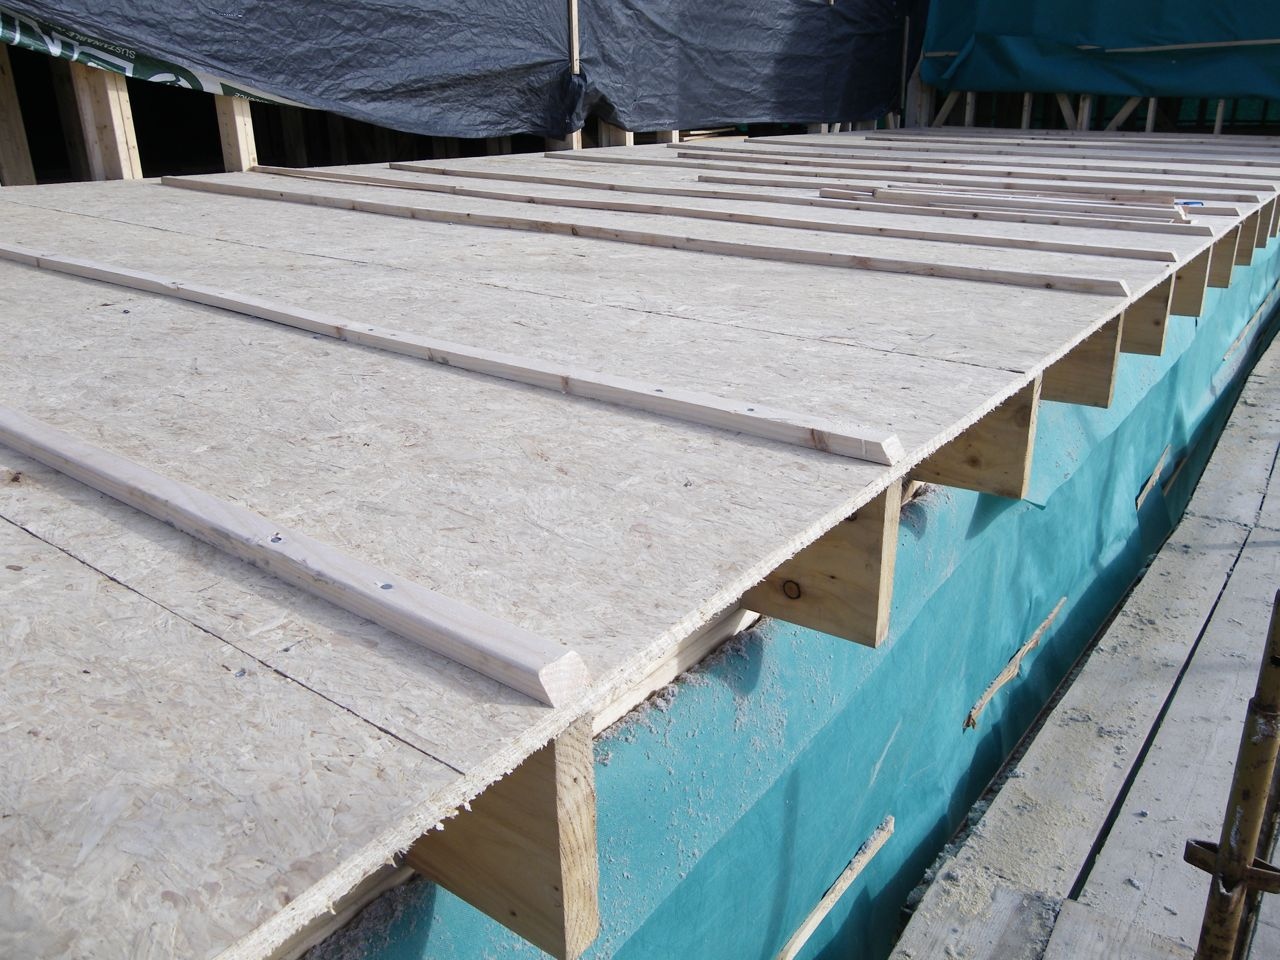 52 53 Build Flat Roof Ready For Felt And Metal